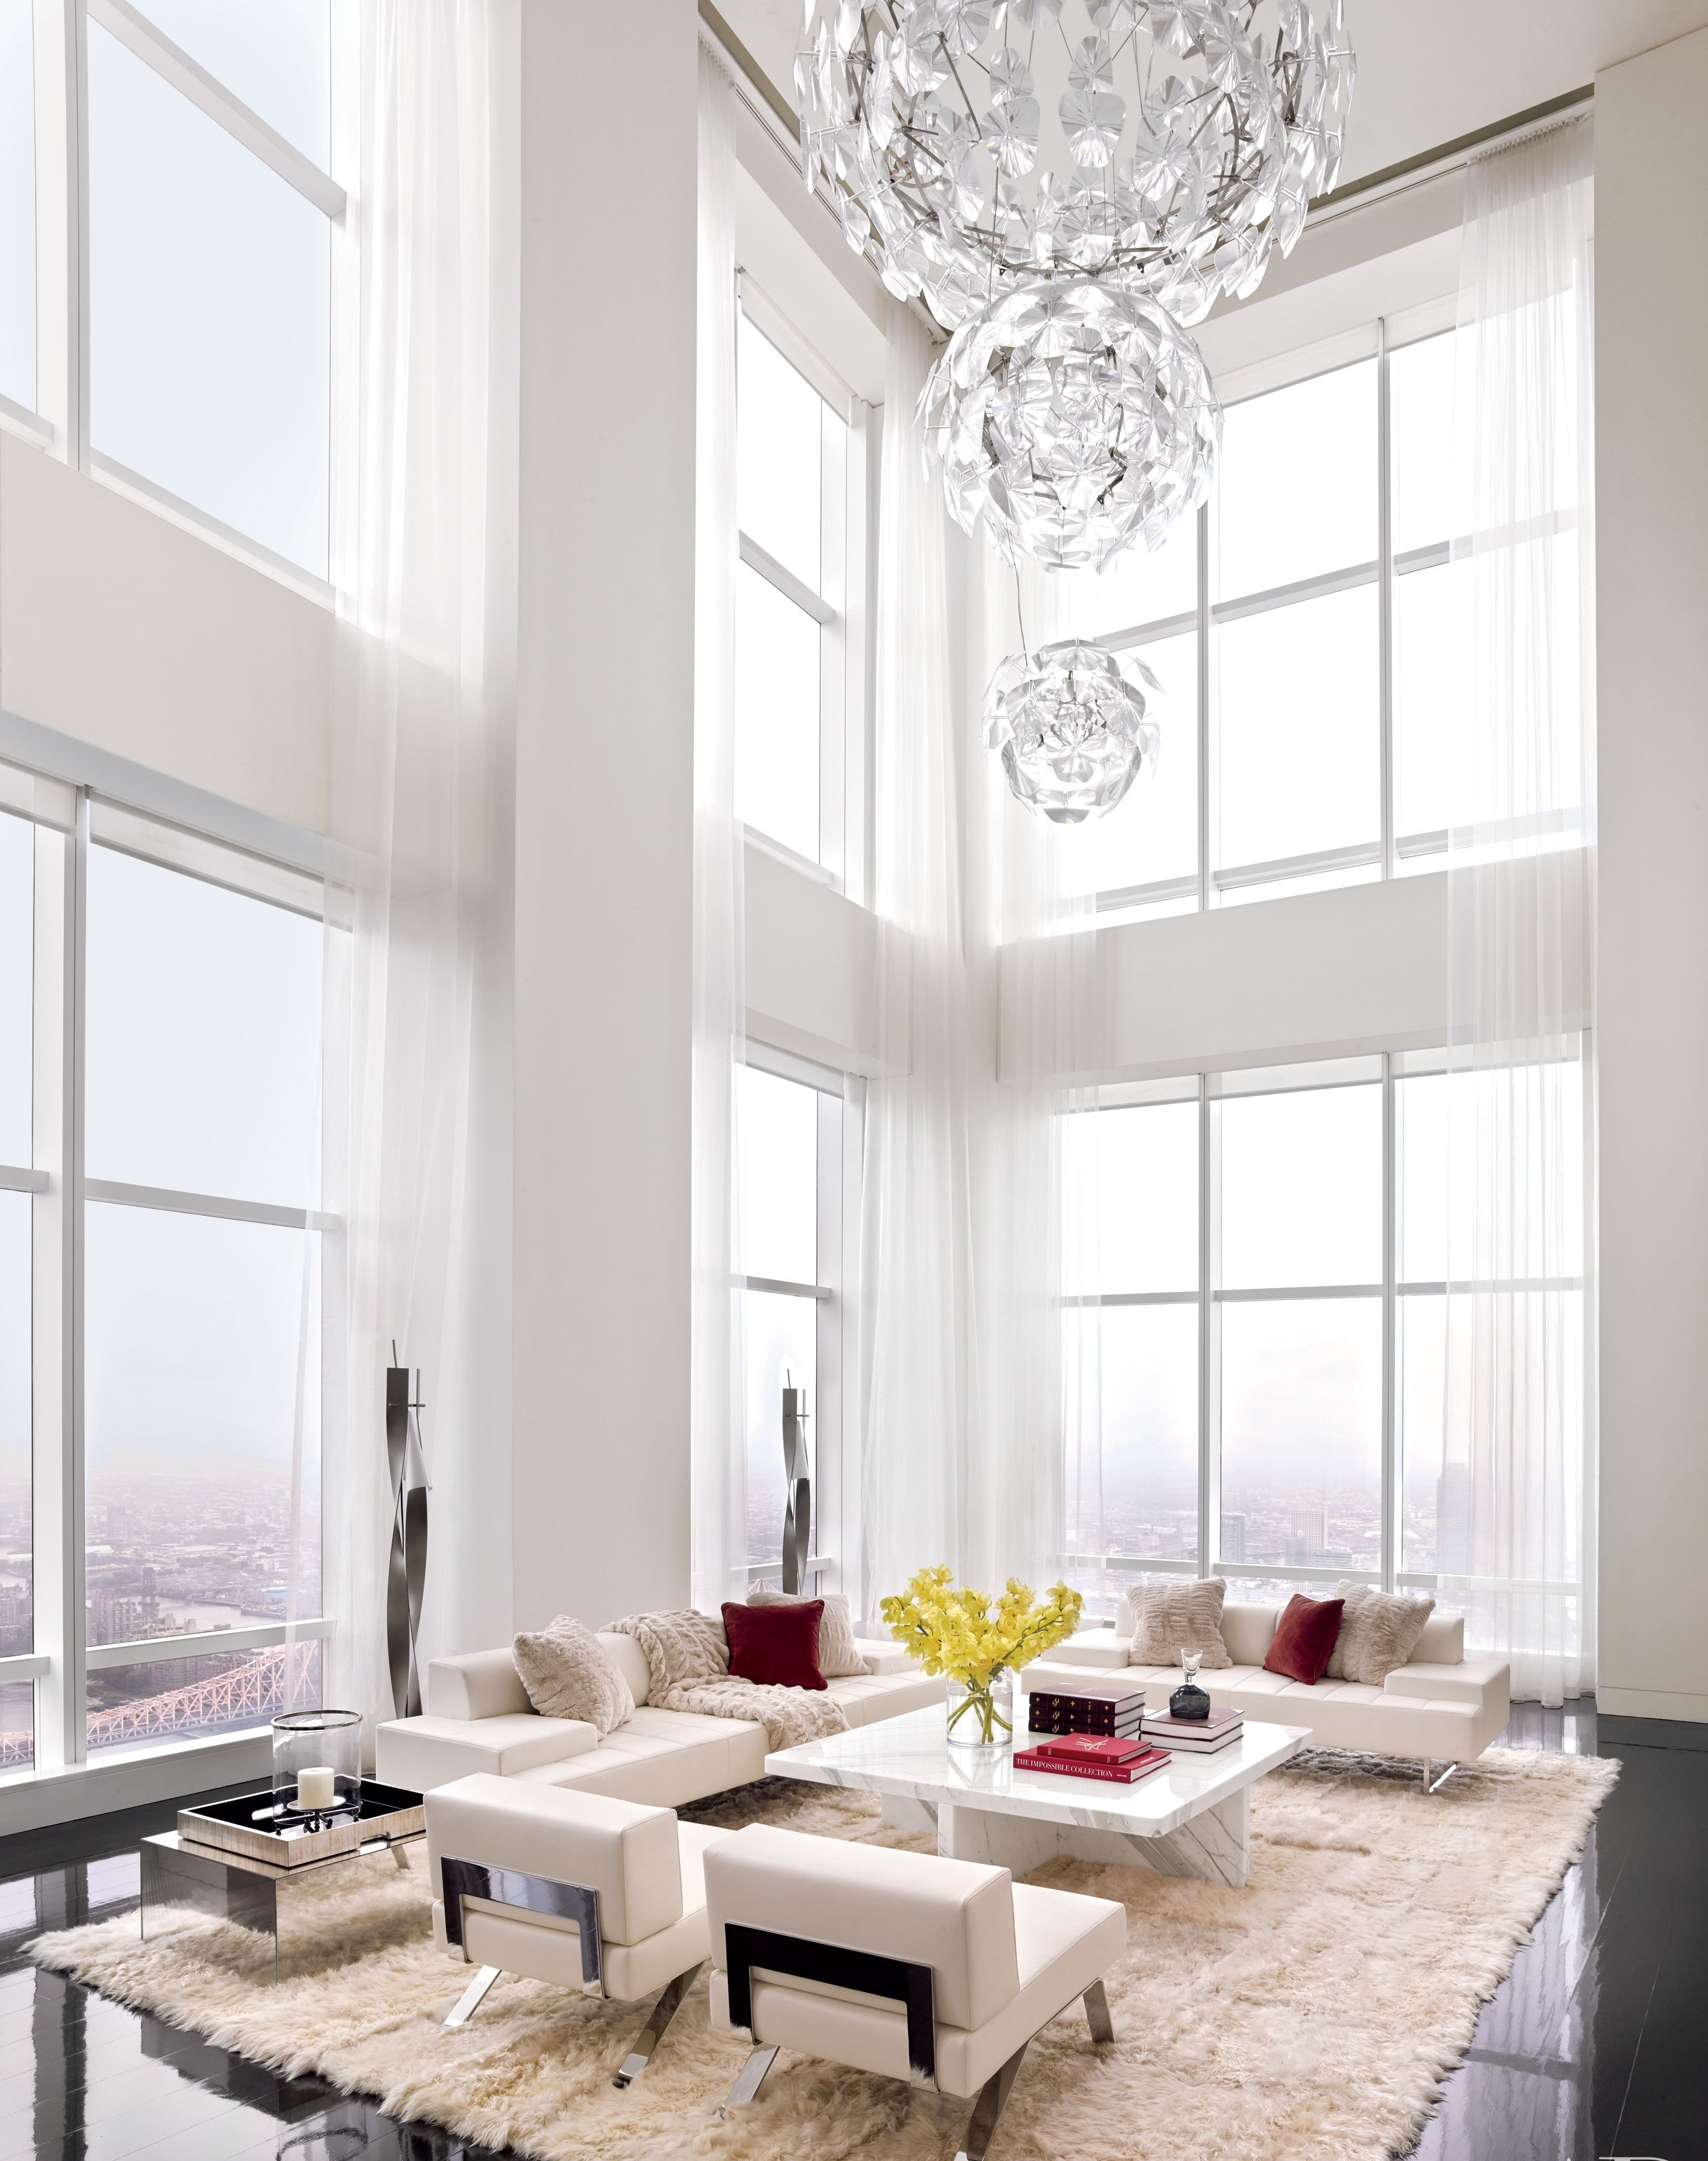 All white living room design ideas for Living room space ideas